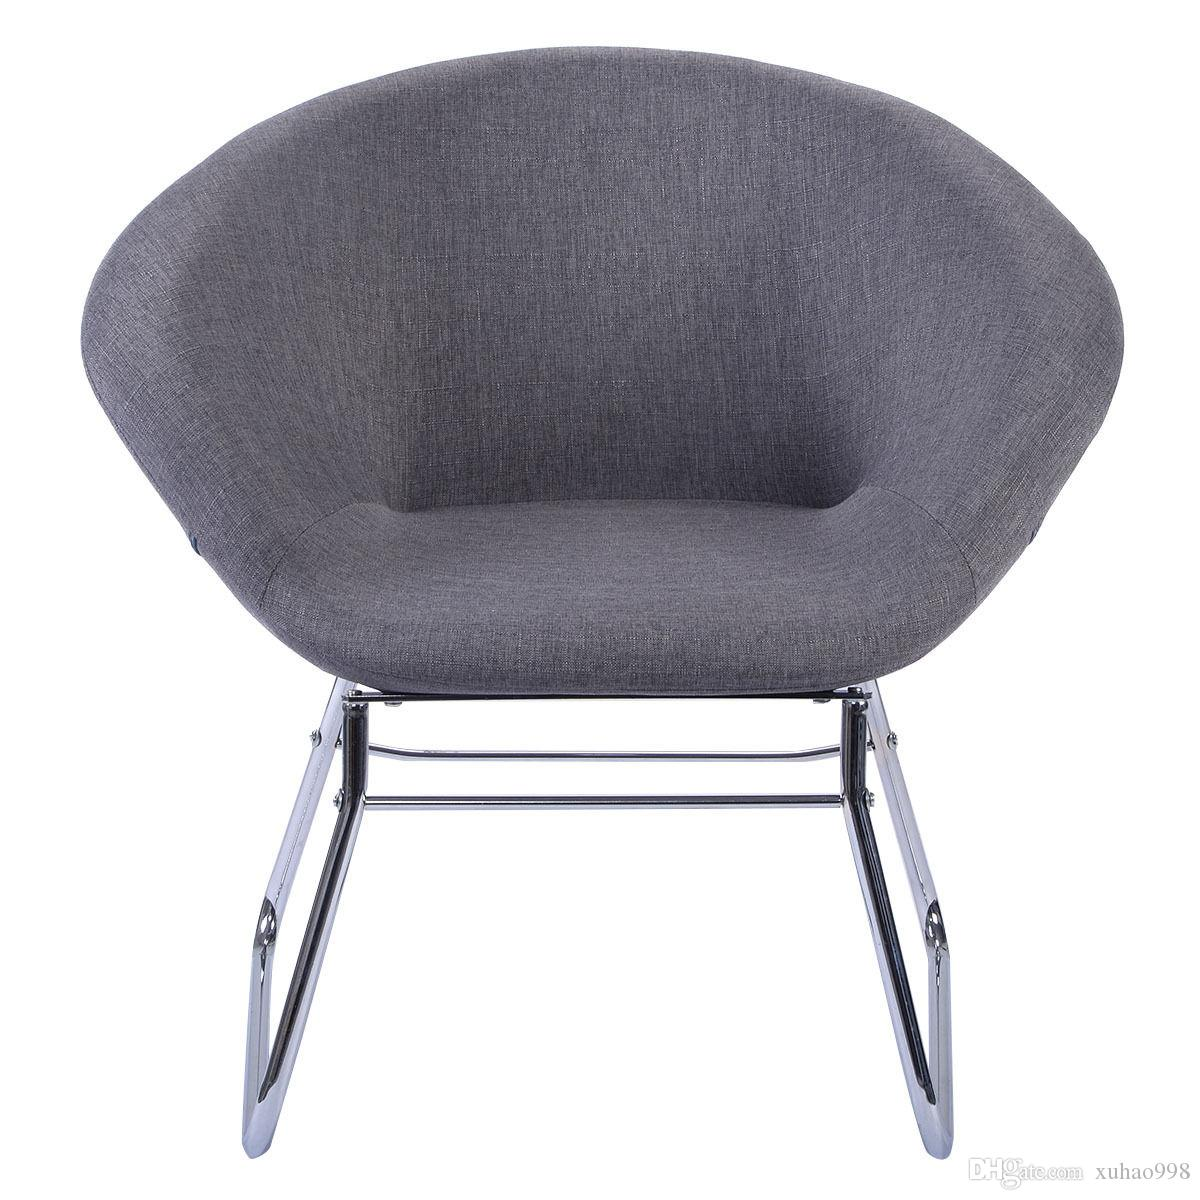 New Modern Gray Accent Chair Leisure Arm Sofa Lounge Living Room Home  Furniture Chair Online With $64.49/Piece On Xuhao998u0027s Store | DHgate.com